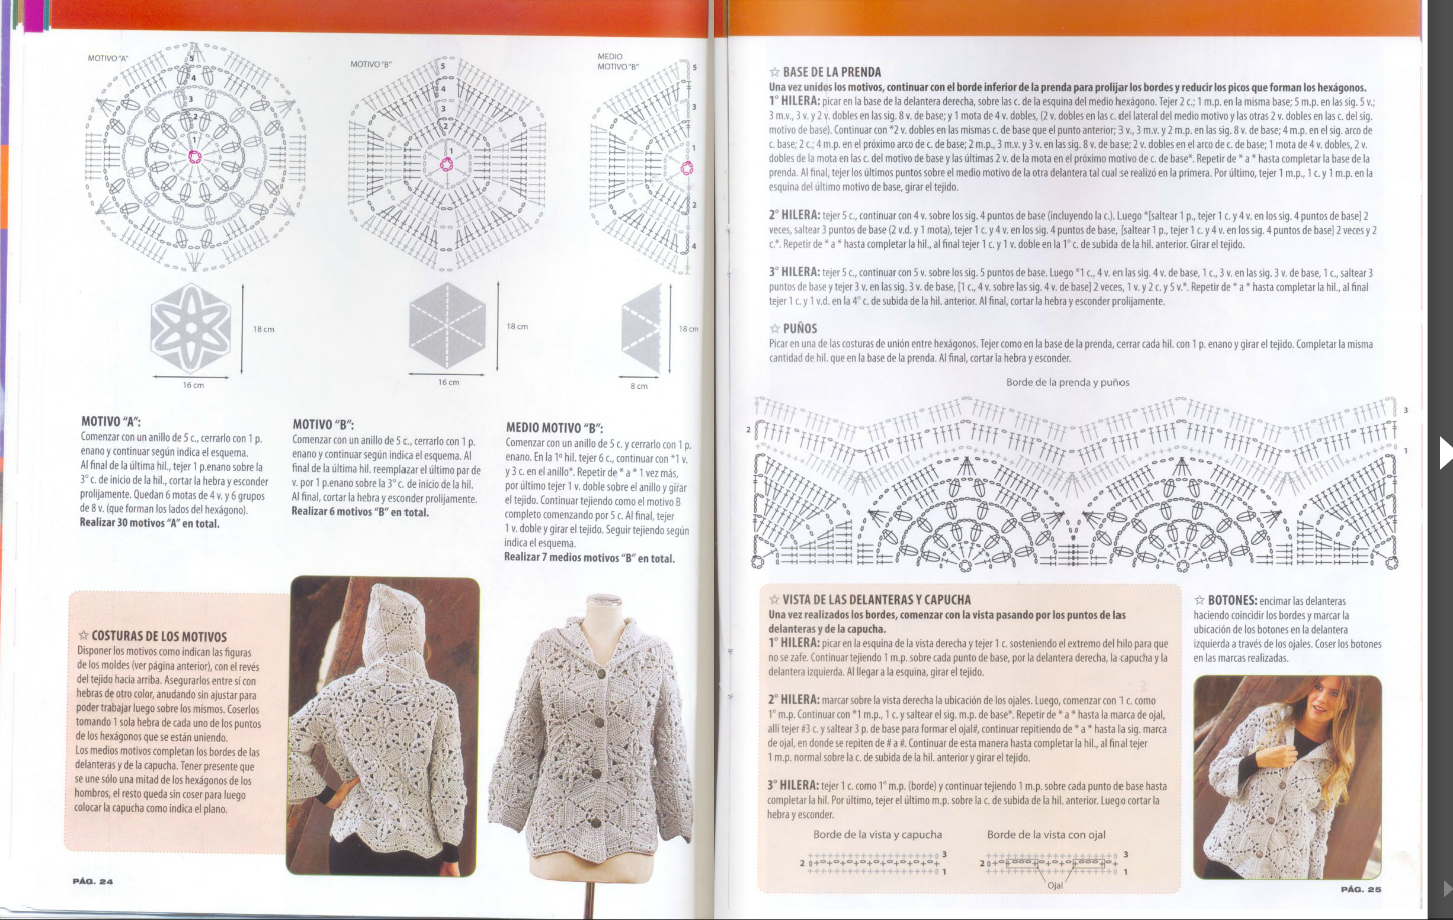 Crochet Stitches Online : Crochetpedia: Crochet Books Online - Crochet Jacket Patterns